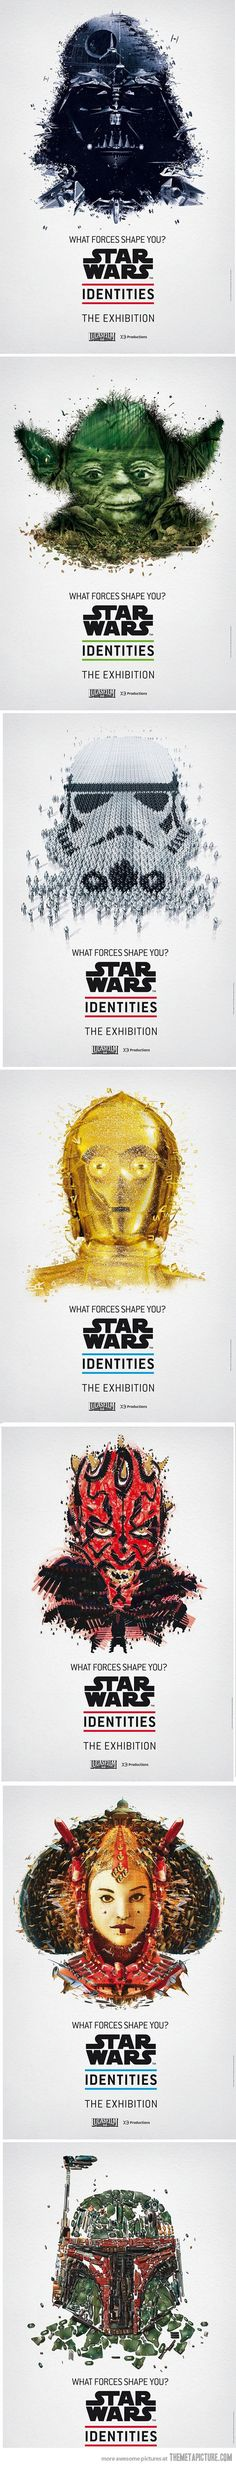 Awesome Star Wars posters.